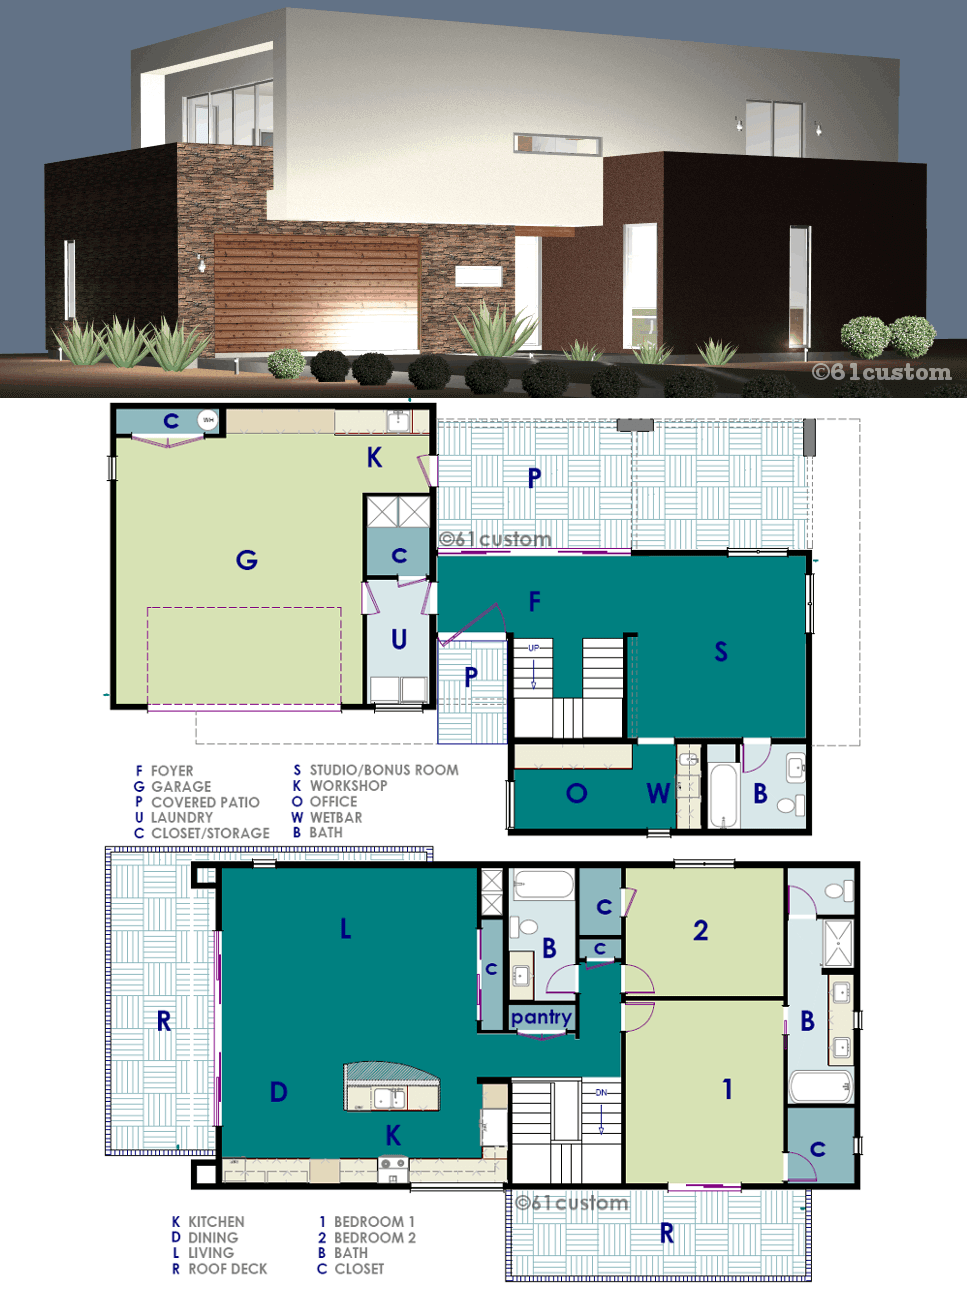 Ultra modern live work house plan 61custom for Modern house plans pdf